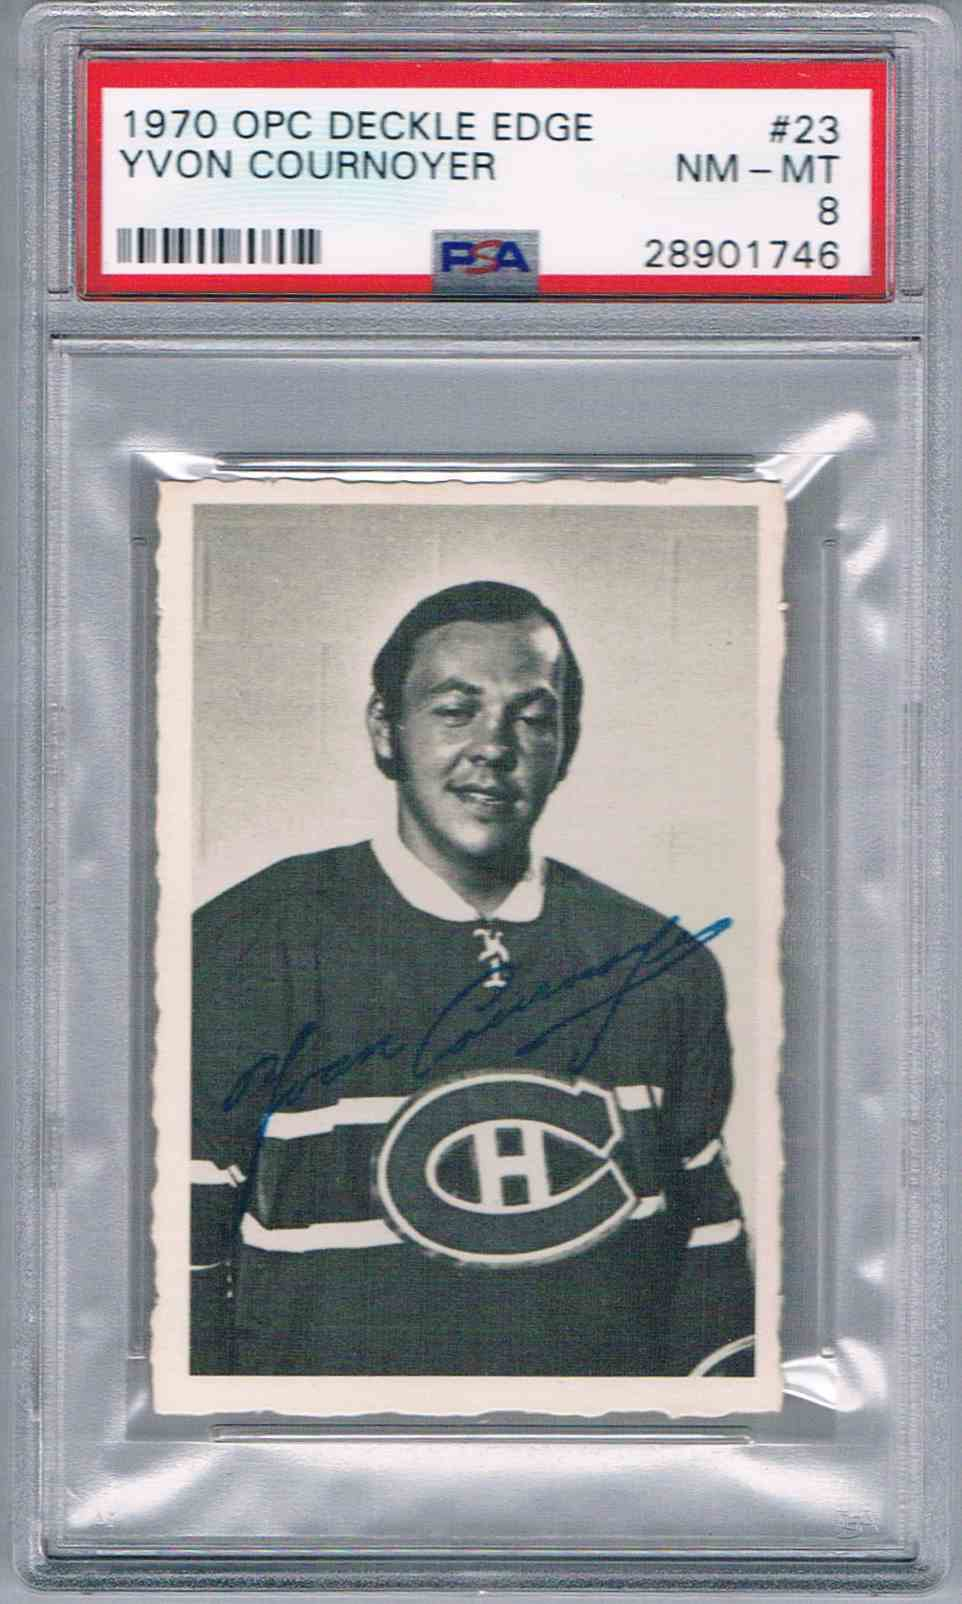 1970-71 O-Pee-Chee OPC Deckle Edge Yvan Yvon Cournoyer #23 card front image